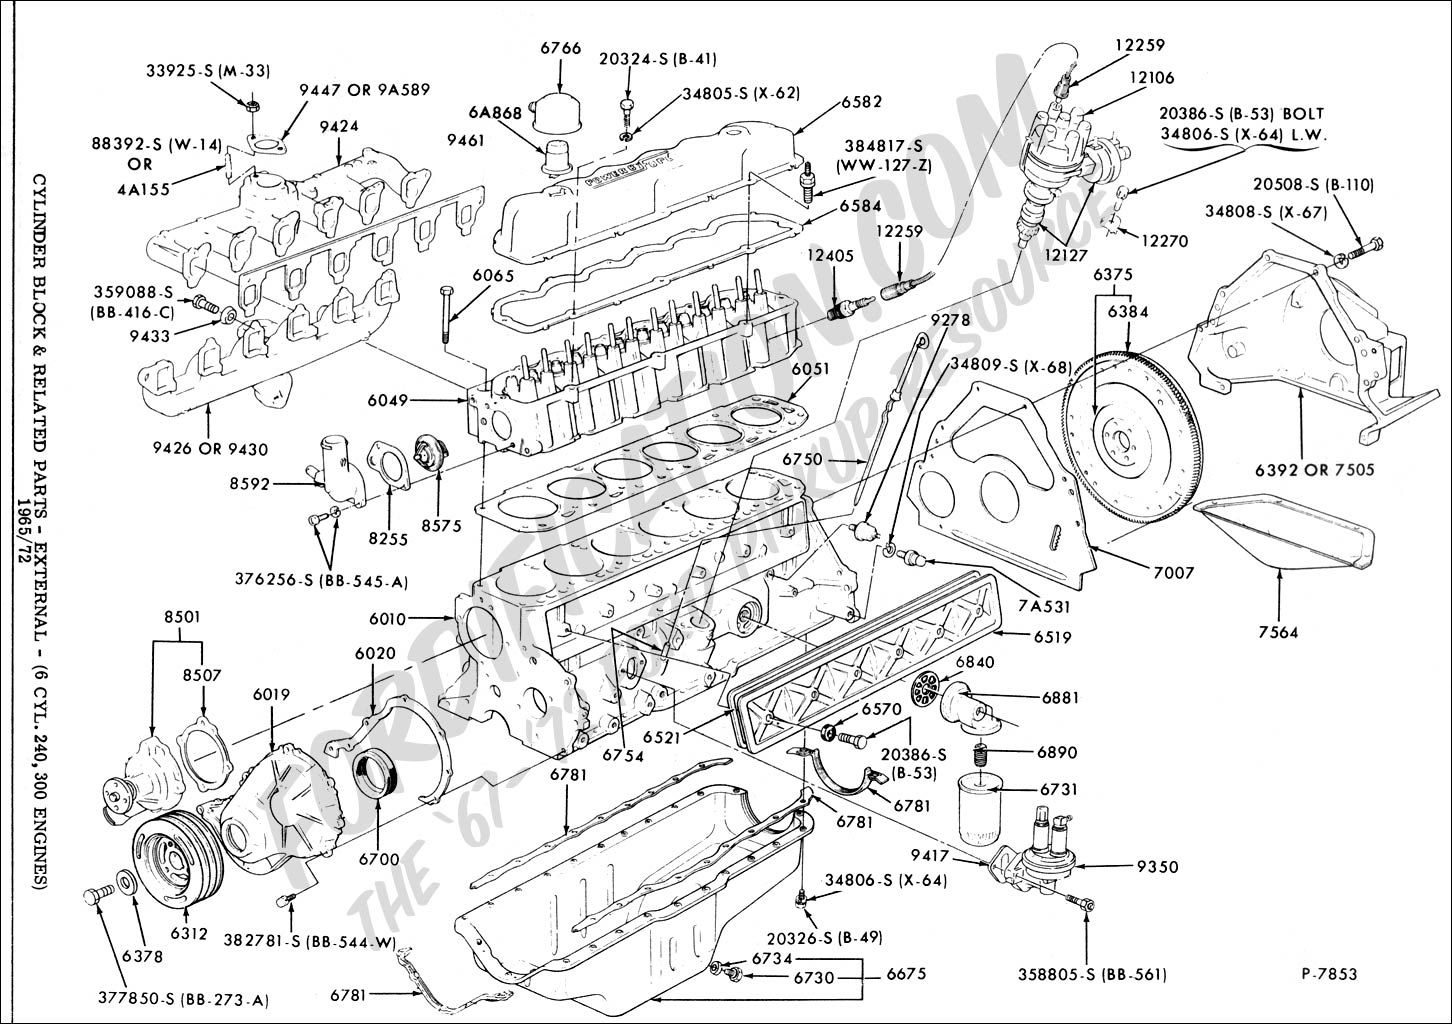 medium resolution of 1989 302 ford engine diagram wiring diagram operations ford 302 engine parts diagram wiring diagram list